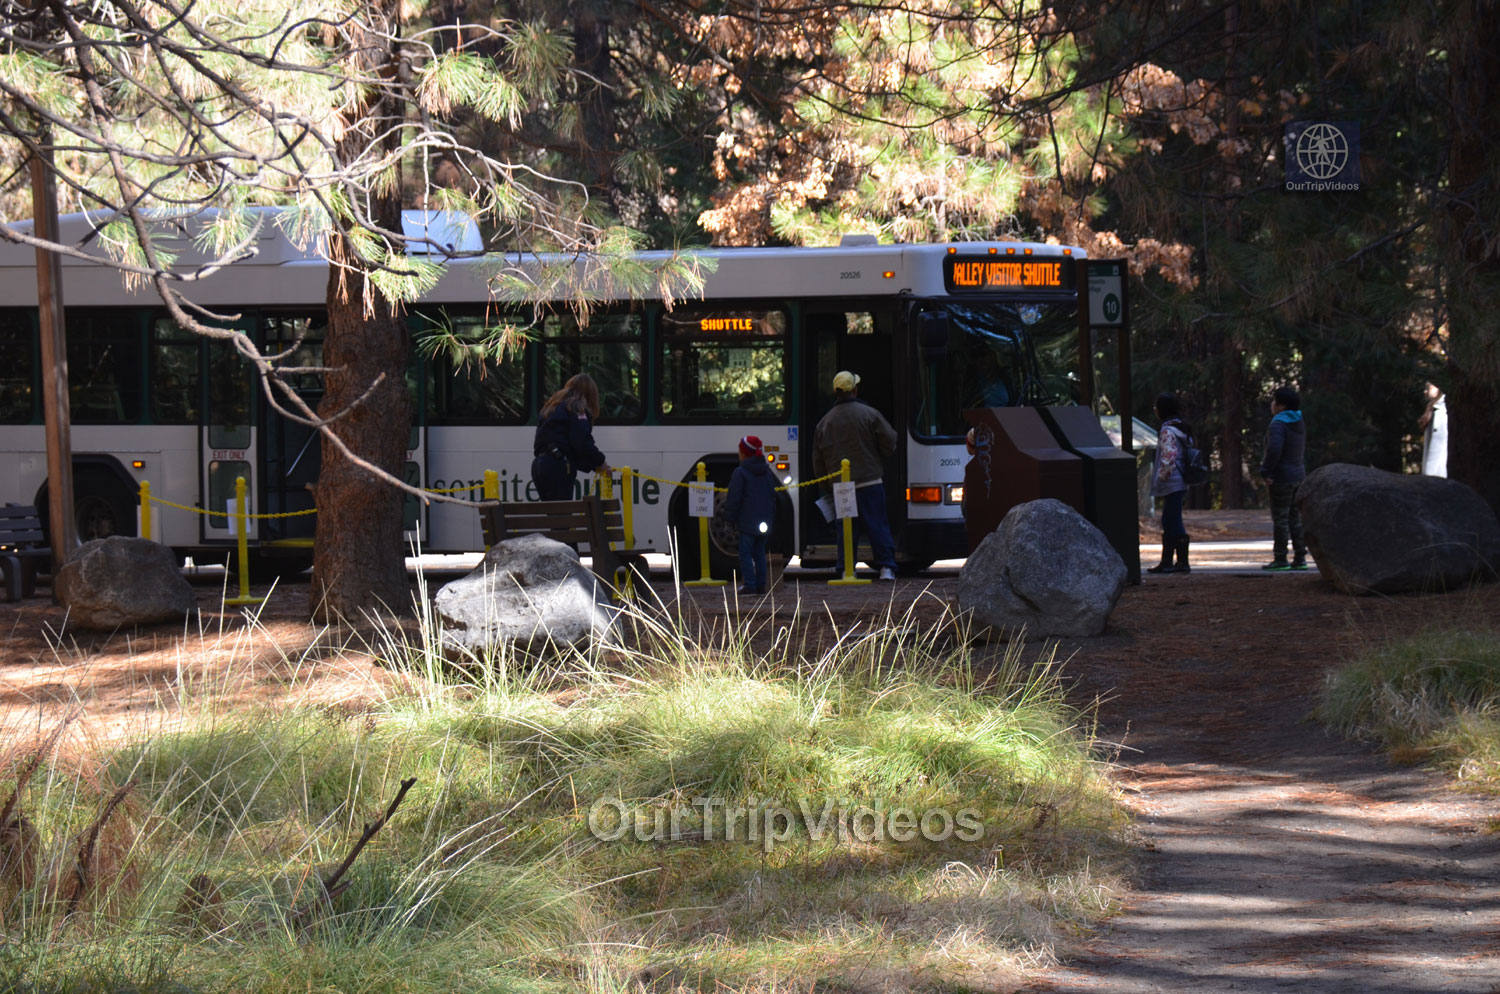 Yosemite National Park - Valley Visitor Center, Yosemite Valley, CA, USA - Picture 1 of 25